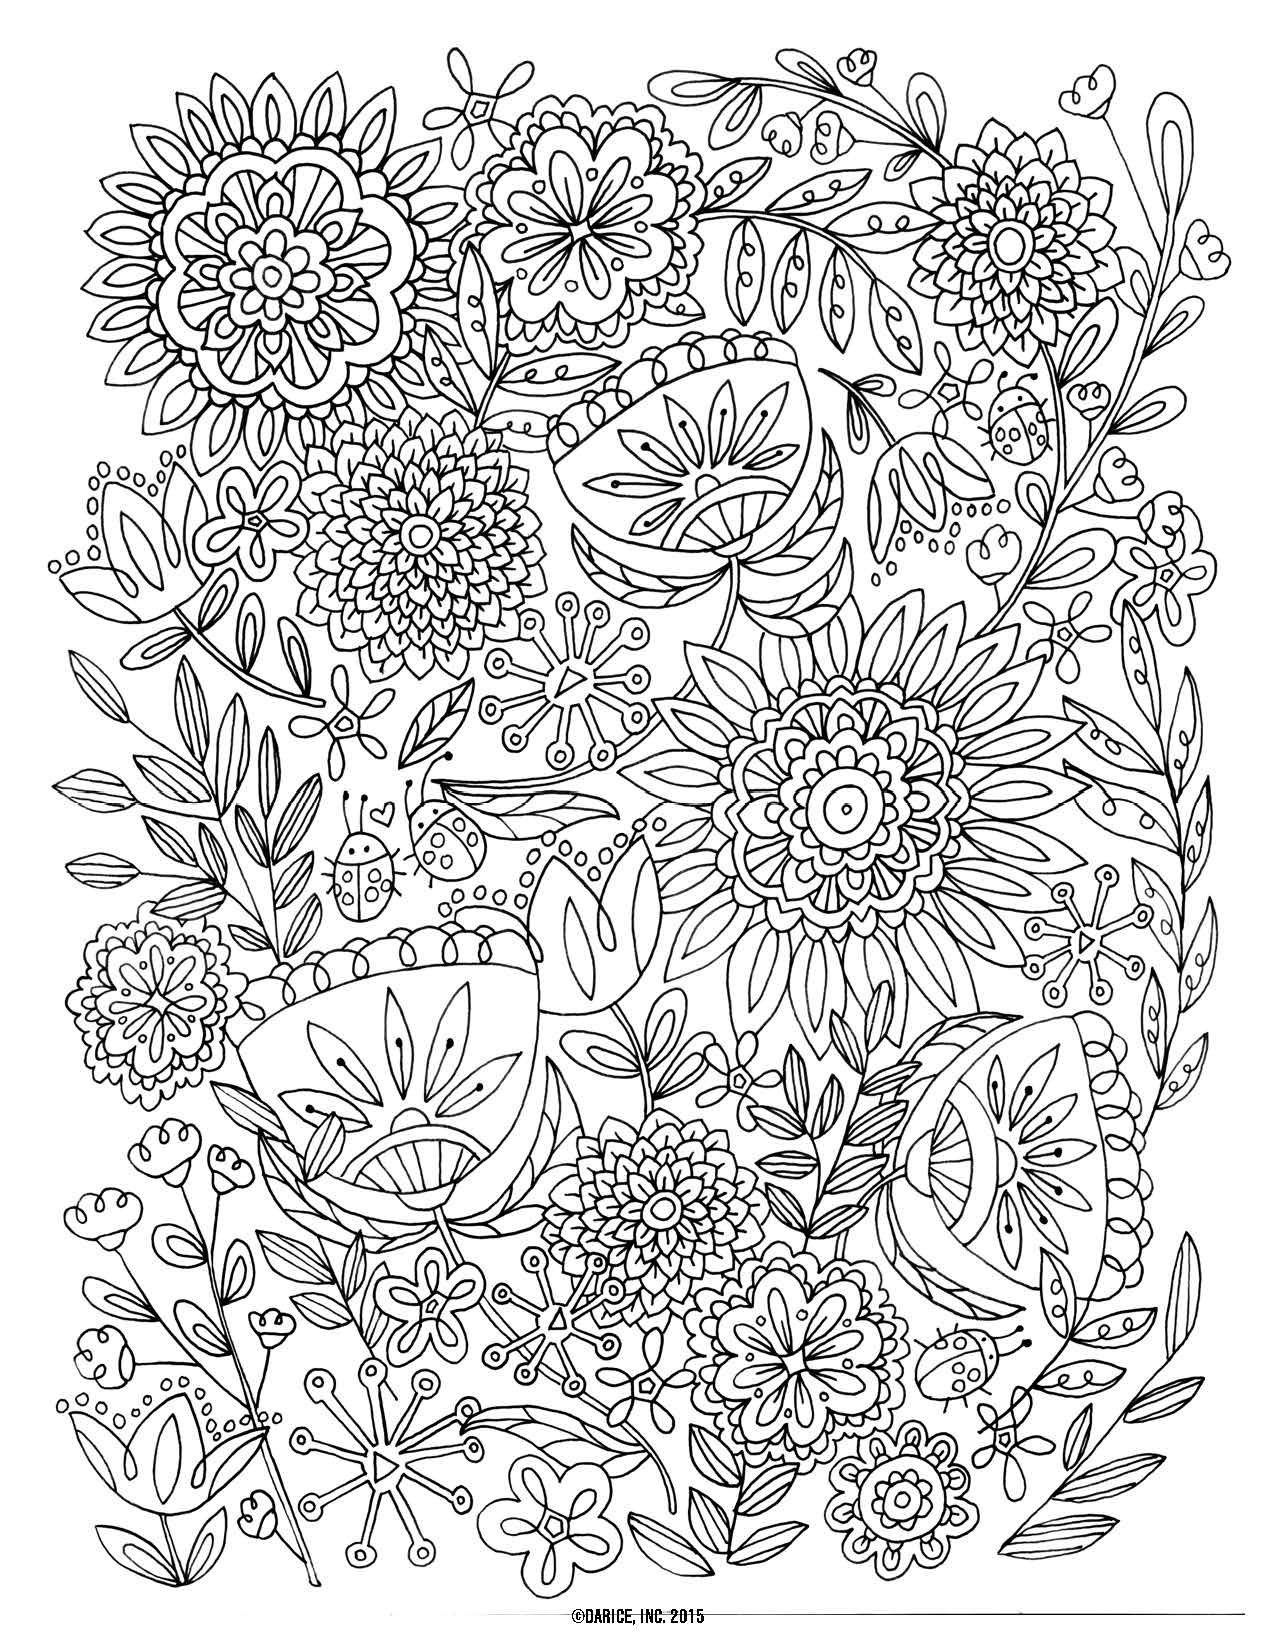 Free Printable Coloring Pages For Adults Landscapes Print Free Coloring Pages Print Coloring Pages Inspirational Paisley Coloring Pages Abstract Coloring Pages